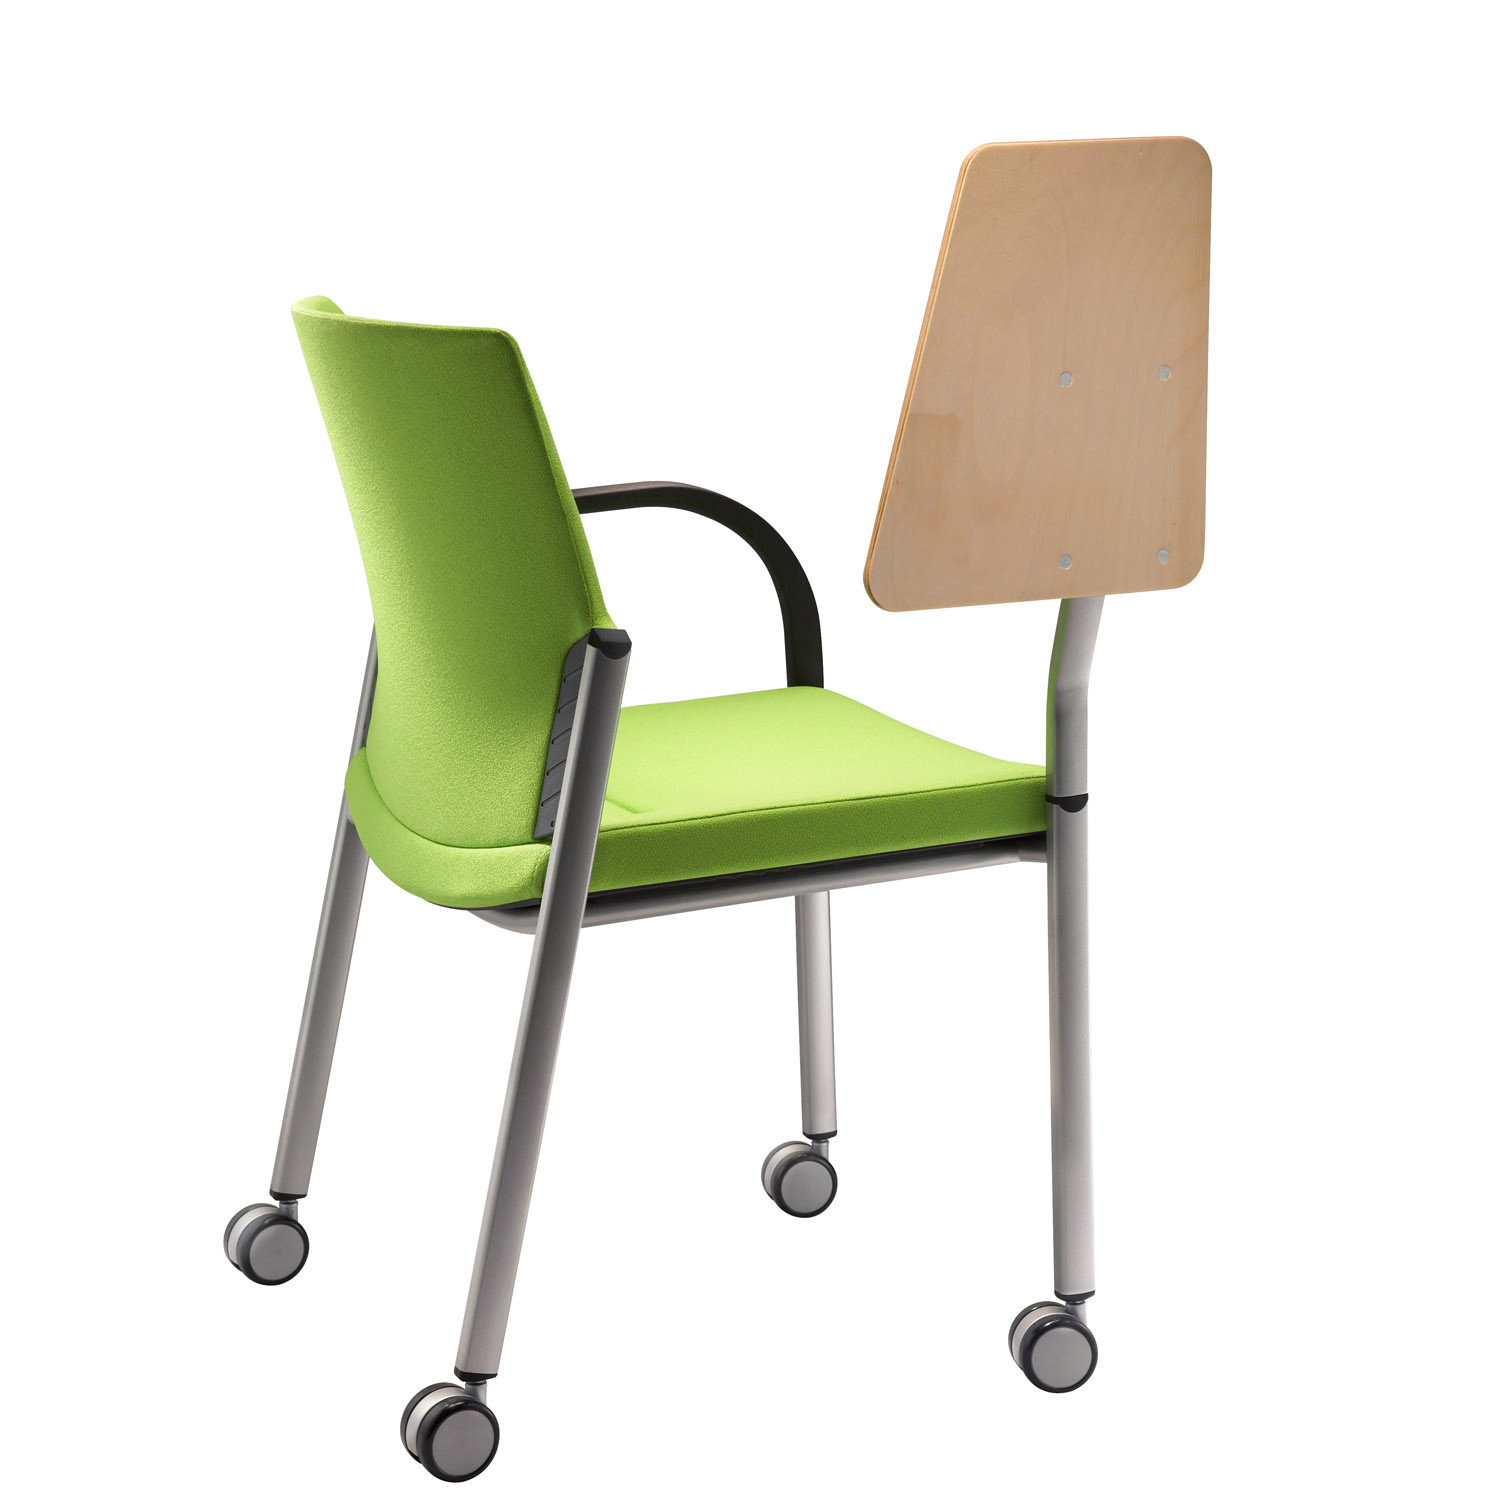 IS Training Chair with Writing Tablet